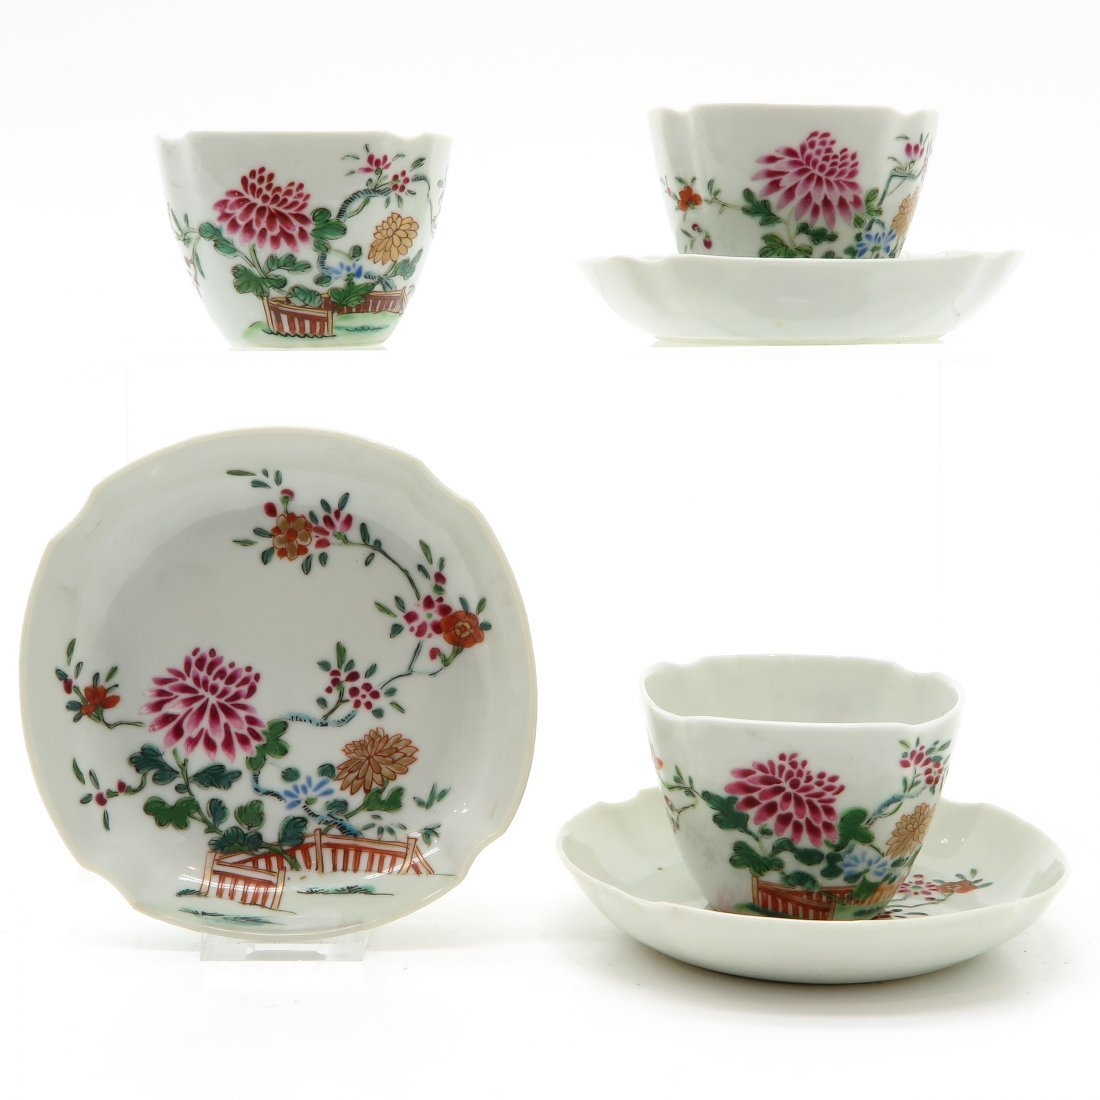 Lot of 3 18th Century China Porcelain Cups and Saucers